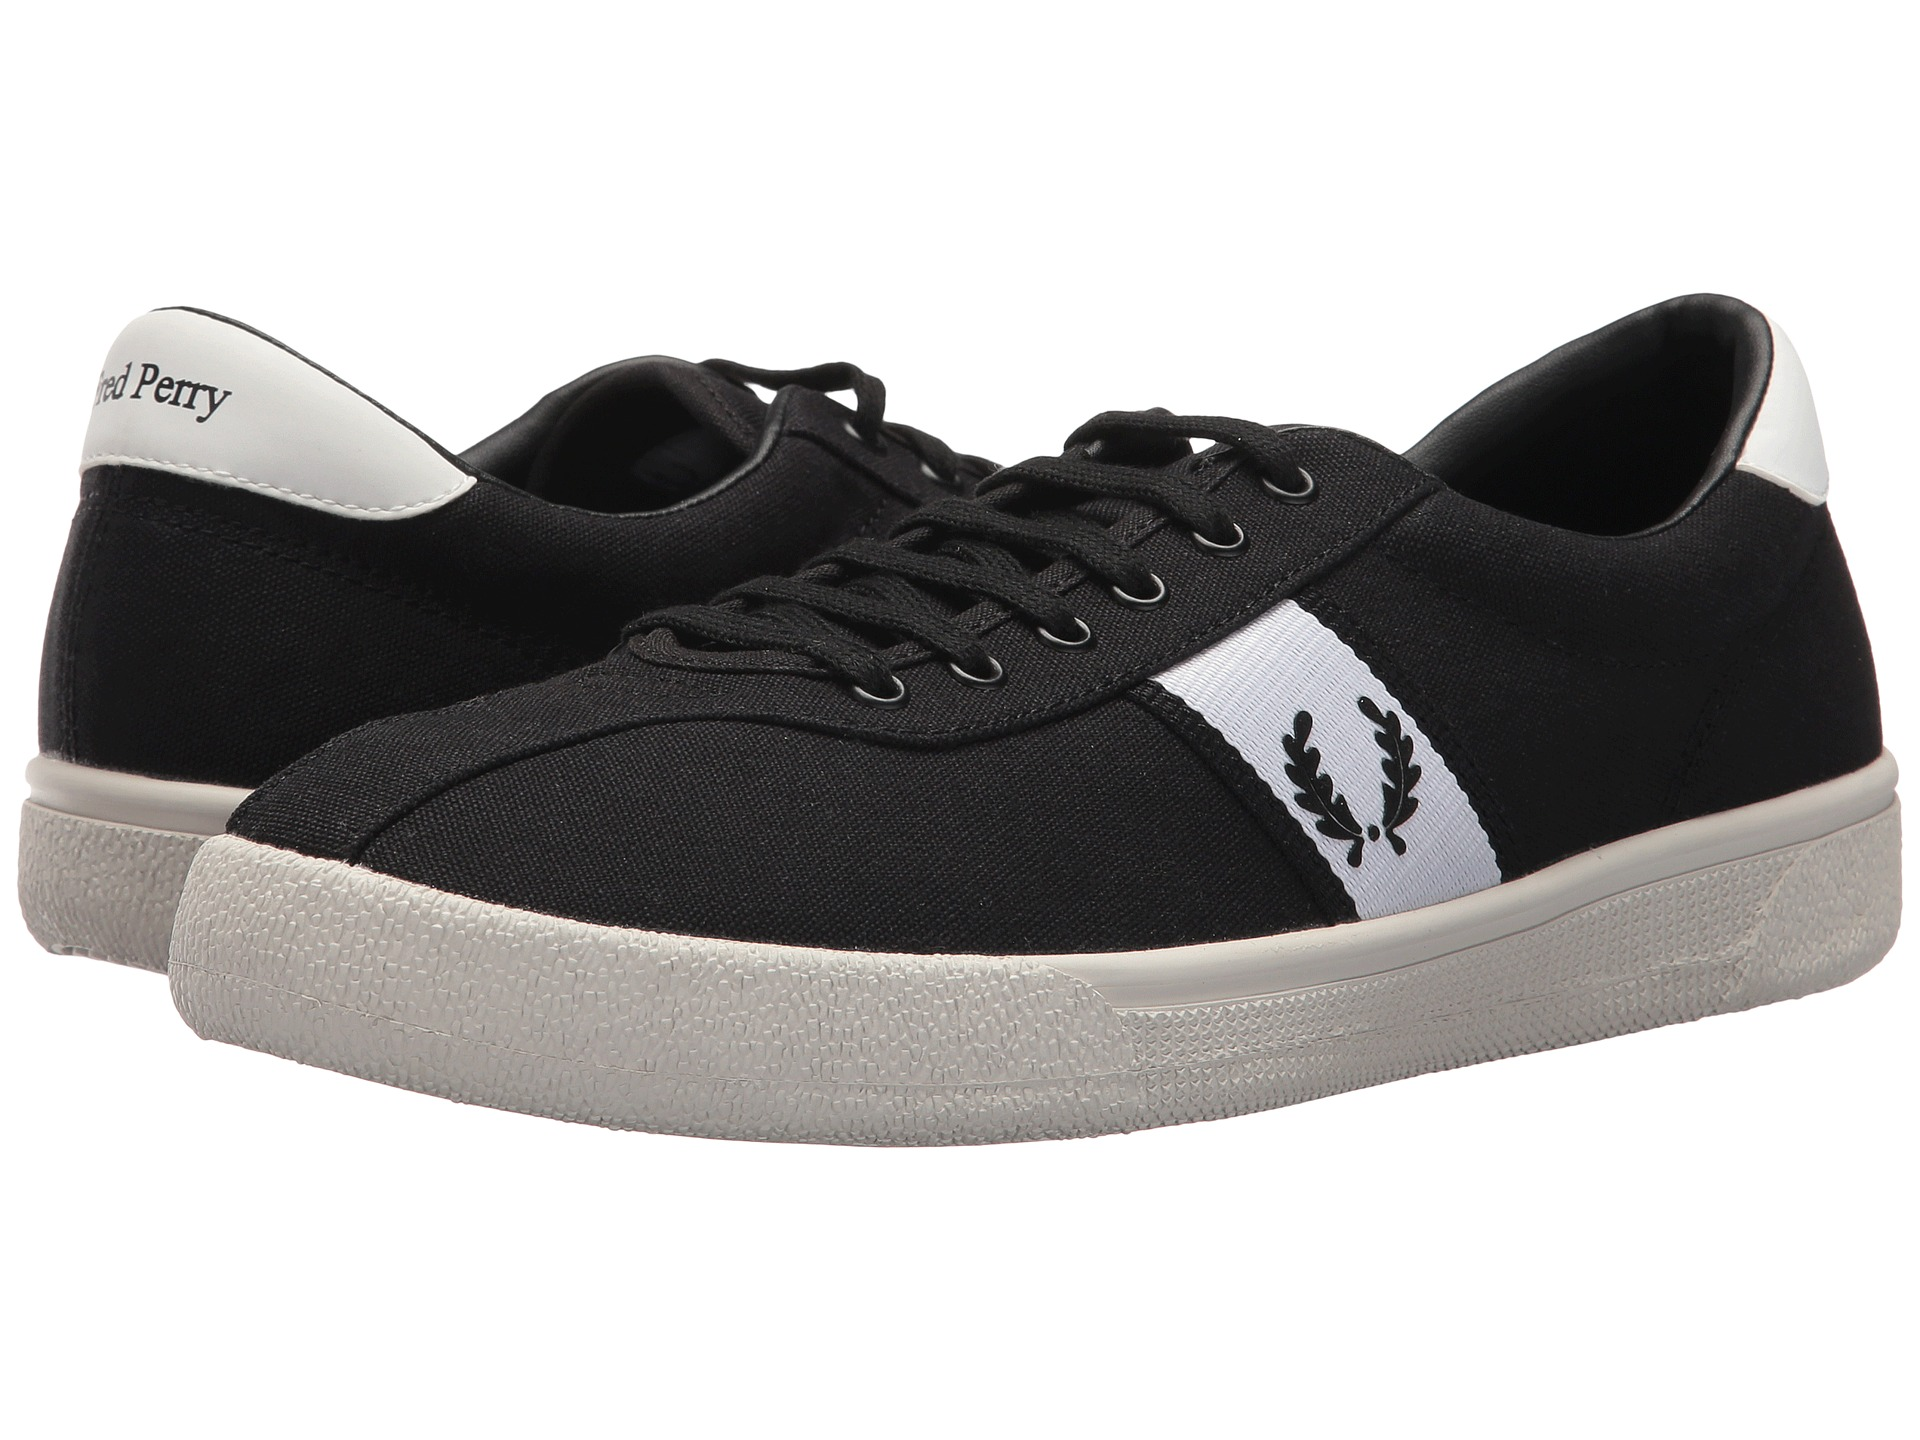 fred perry tennis shoe 1 canvas at zappos